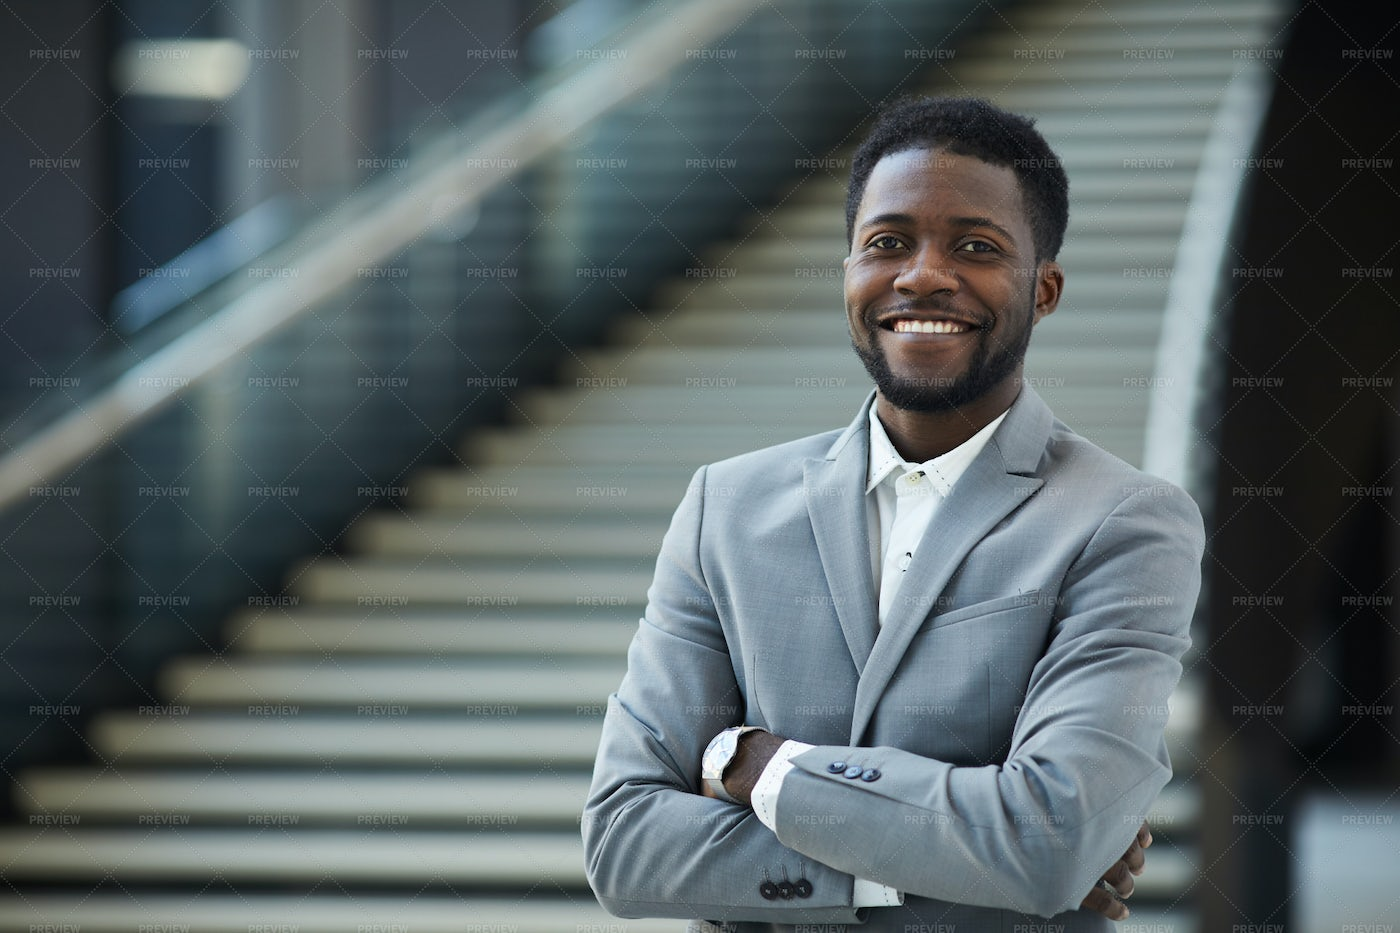 Successful Black Business Executive: Stock Photos